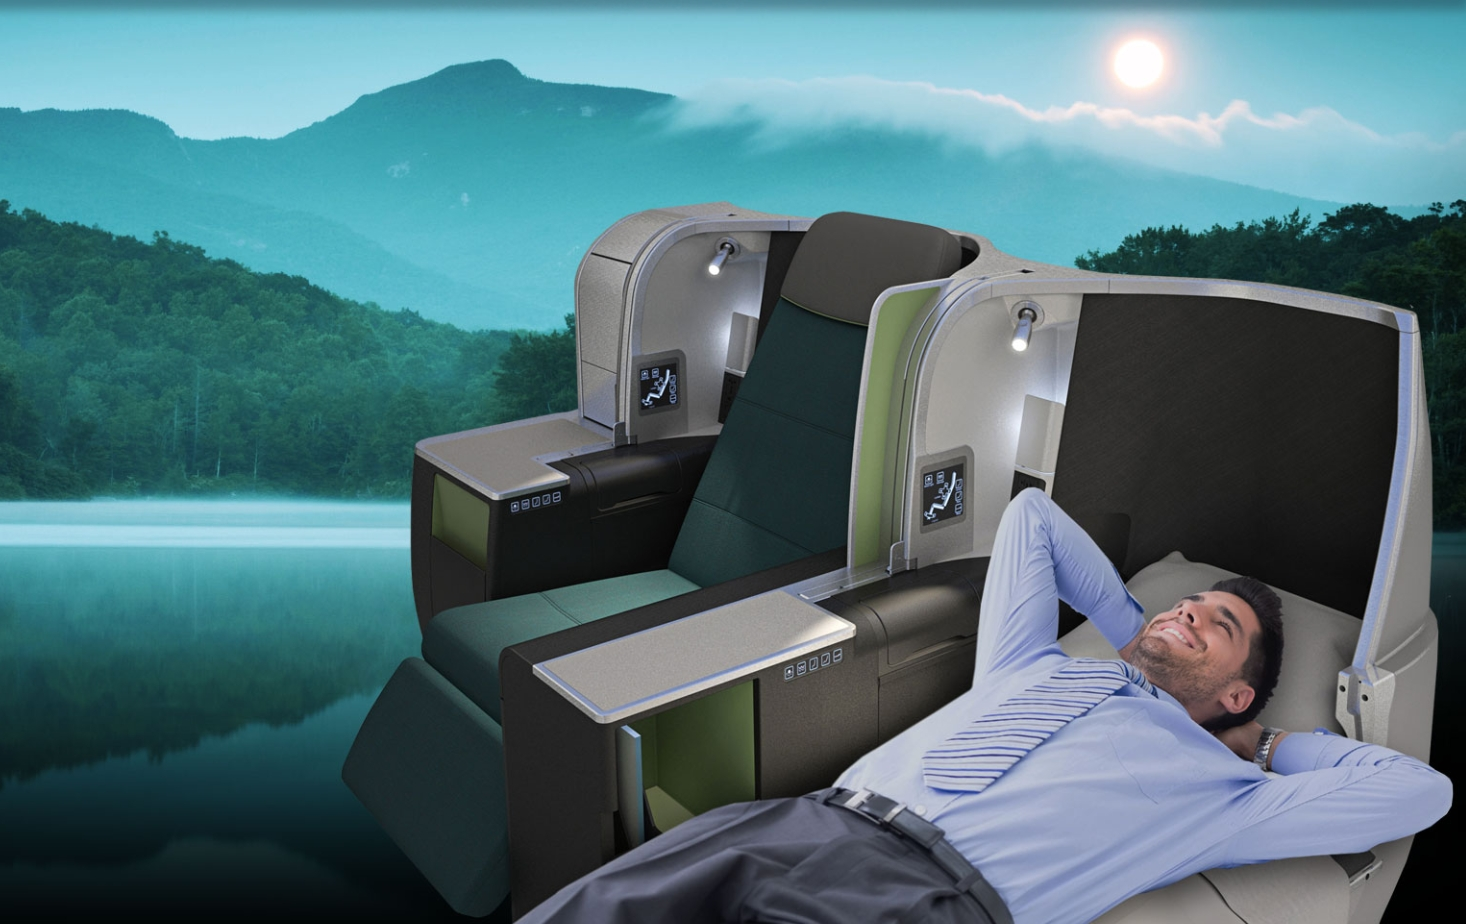 Aer Lingus new Business Class ticks many product and